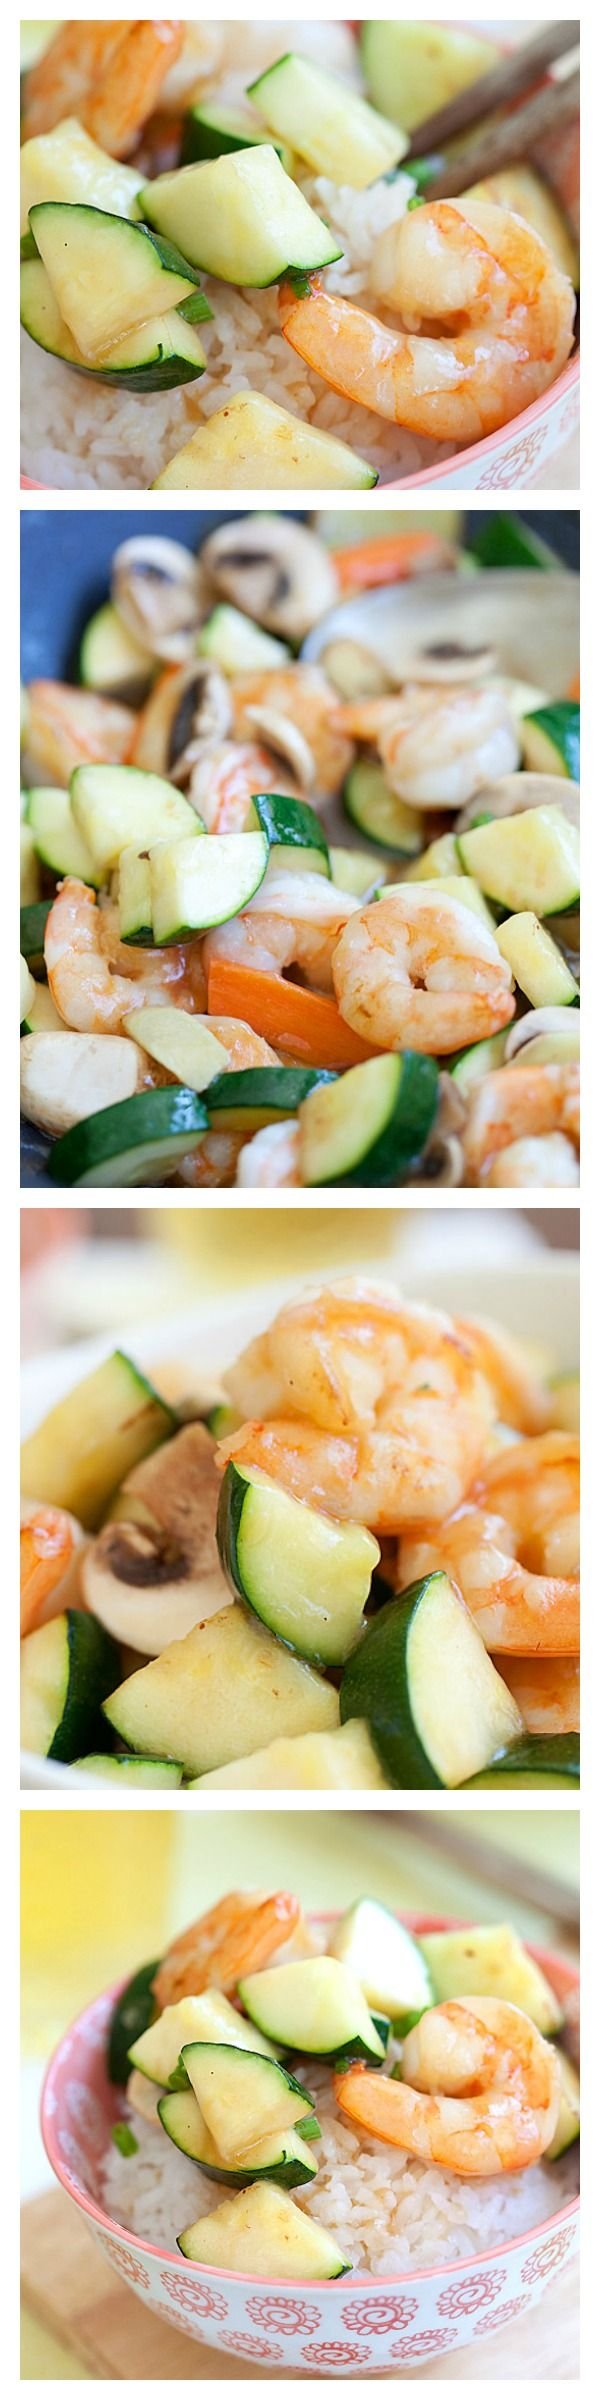 Zucchini and Shrimp Stir-Fry - Super easy, refreshing, yummy and takes less than 30 minutes. Make it tonight for a healthy and light dinner!